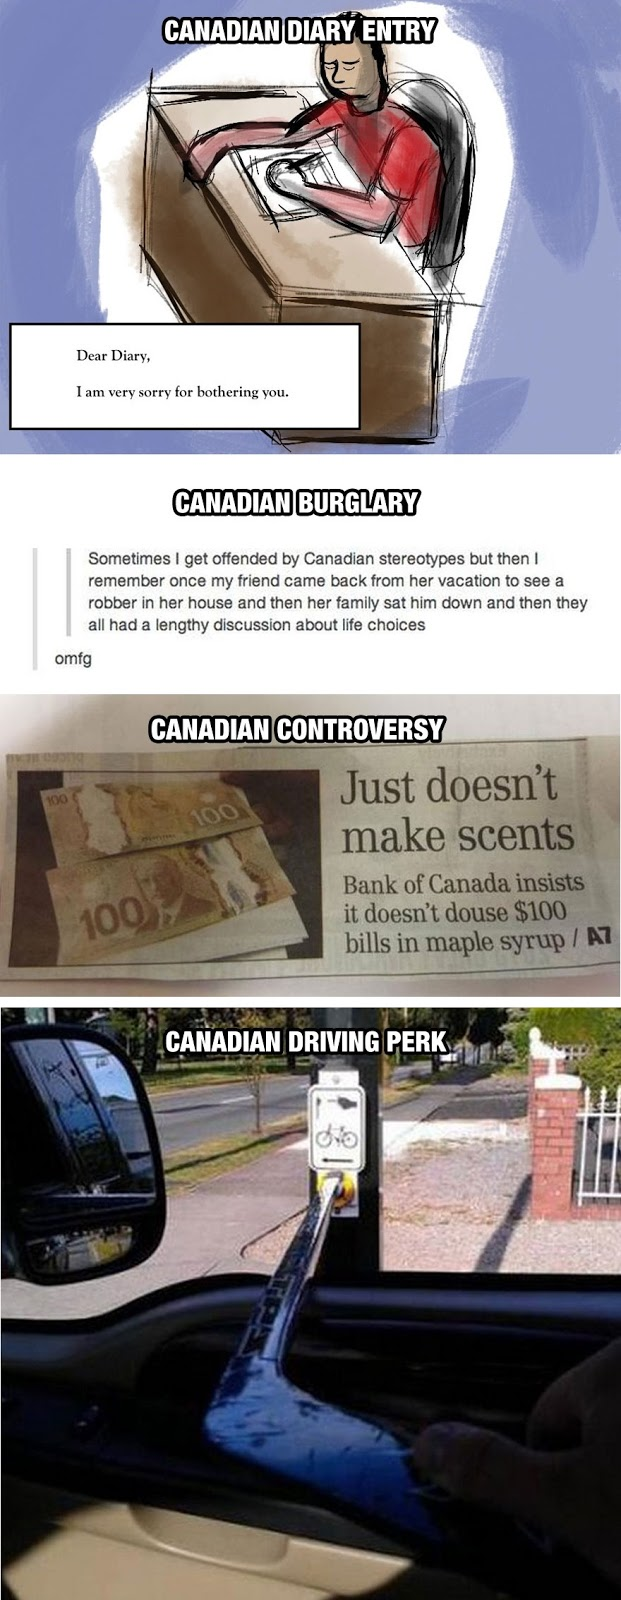 We do things differenrtley in Canada, eh?